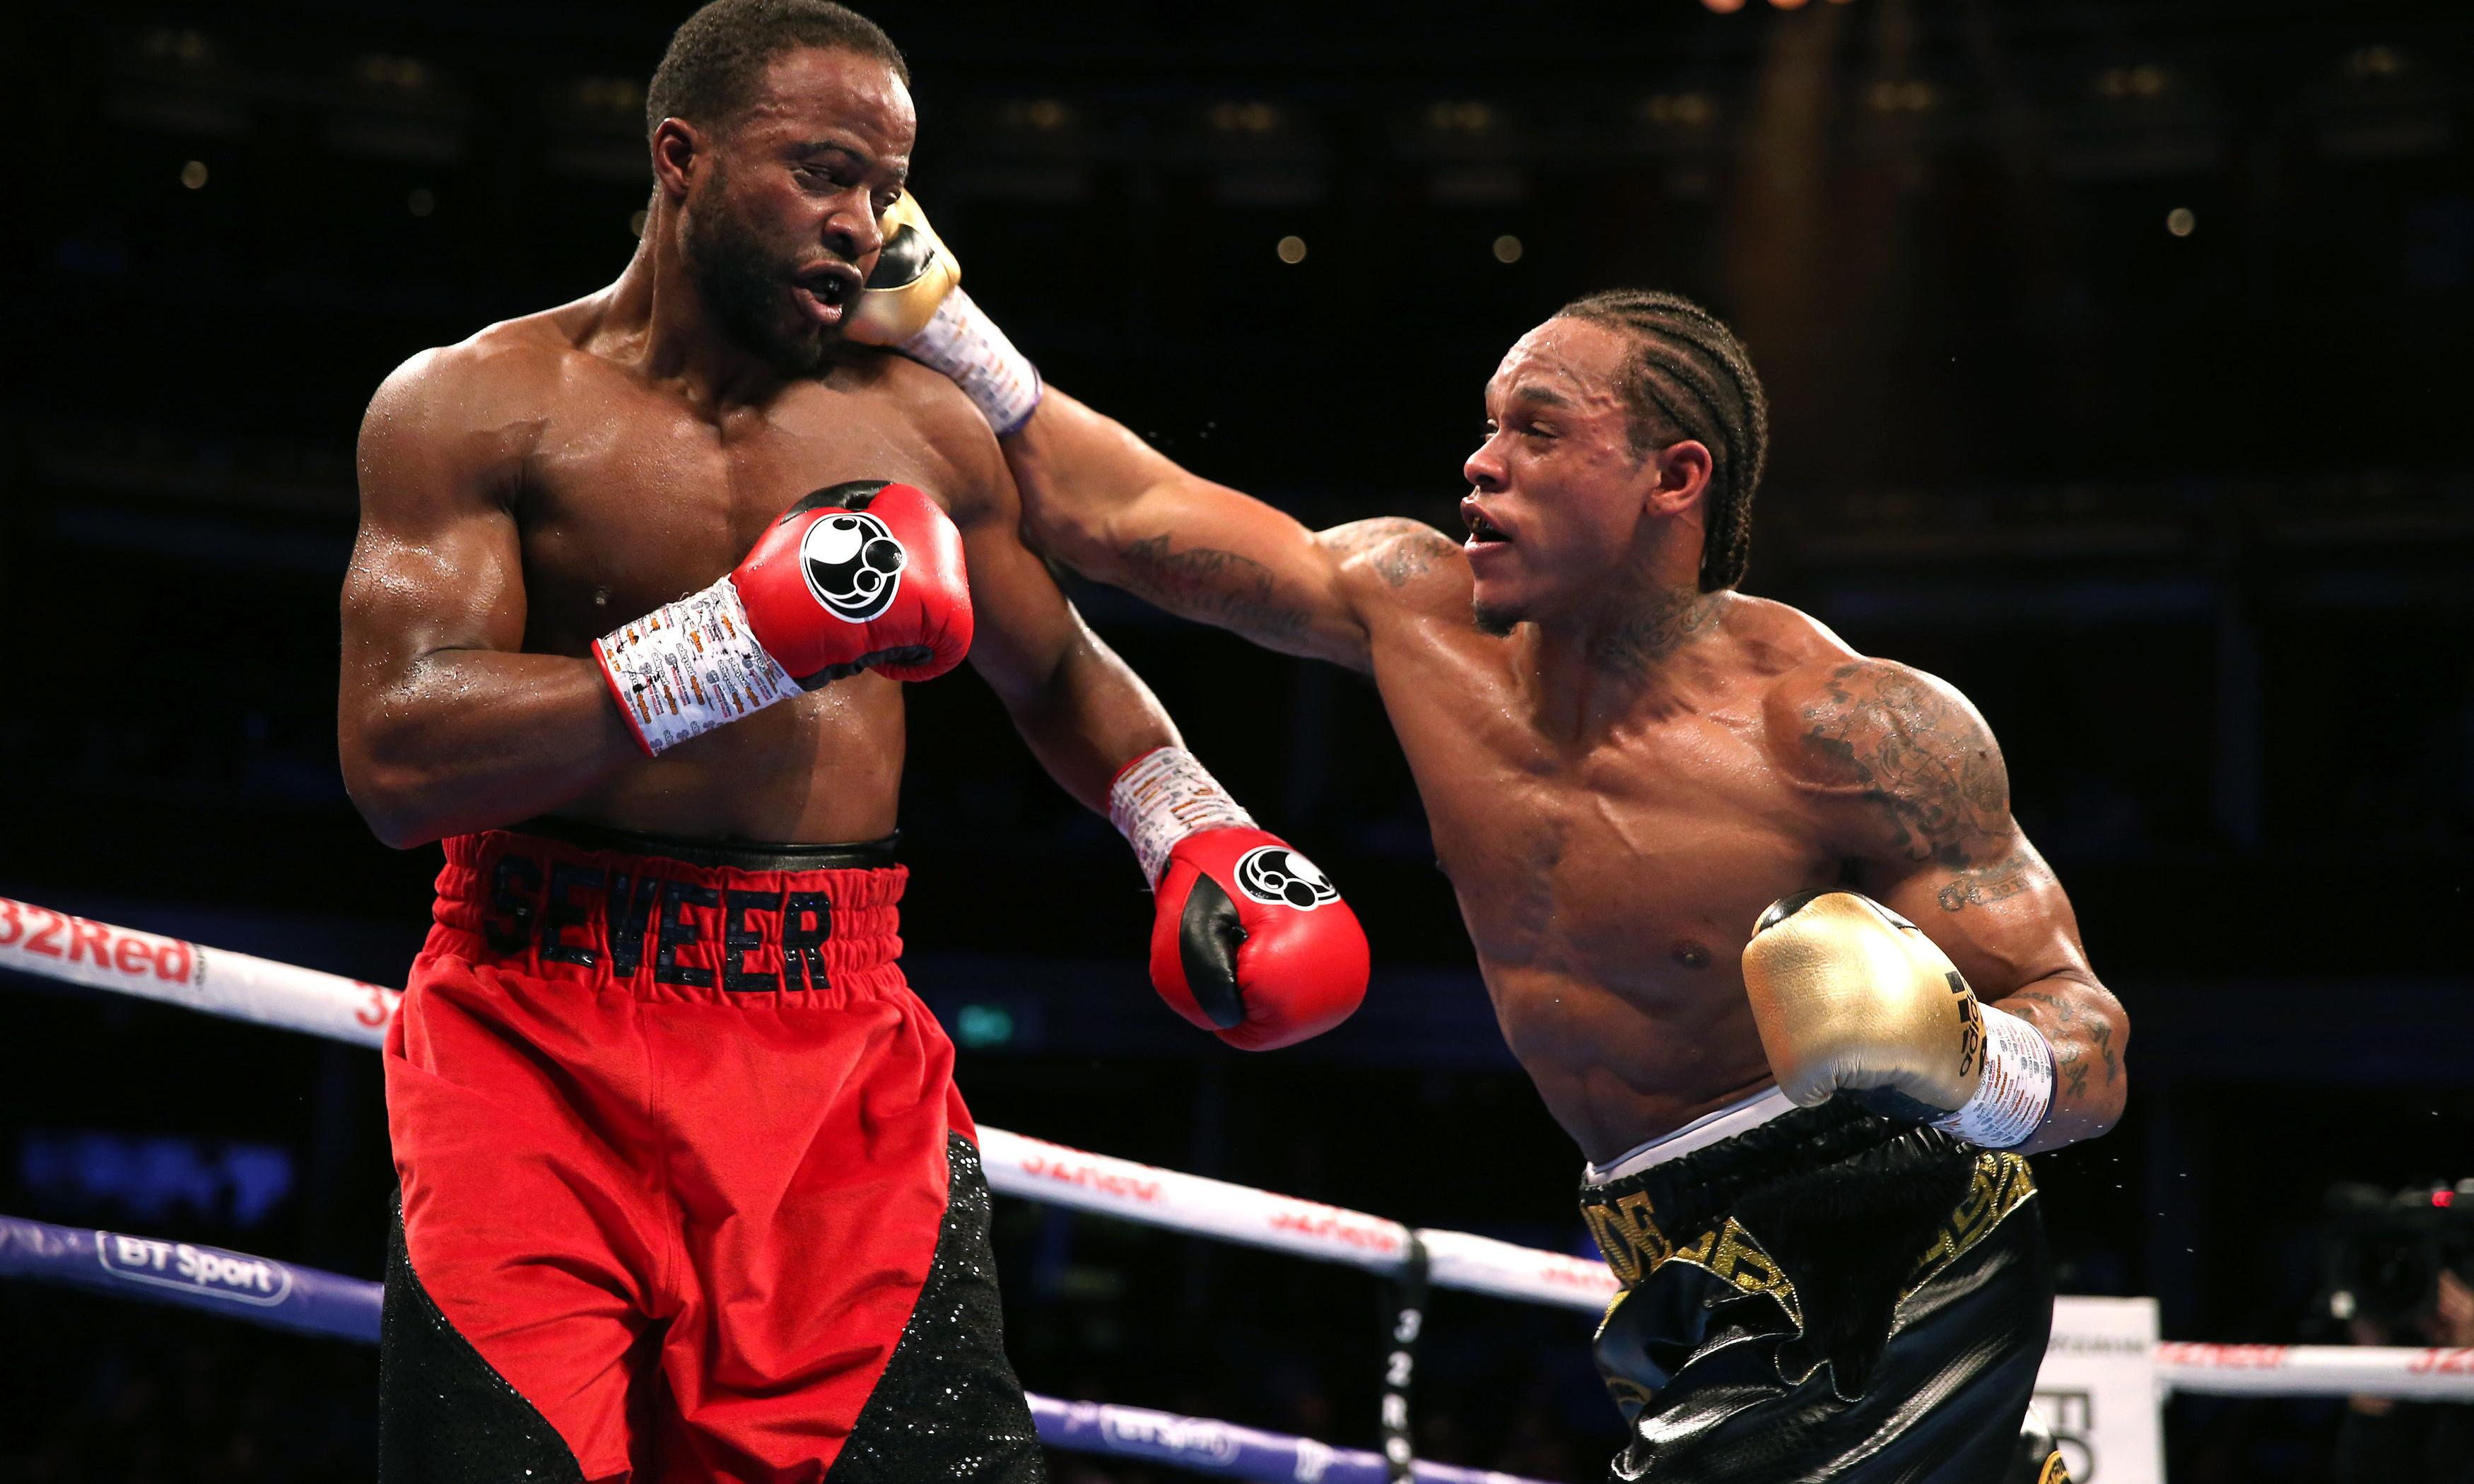 Anthony Yarde closes in on title shot as boxing returns to Albert Hall